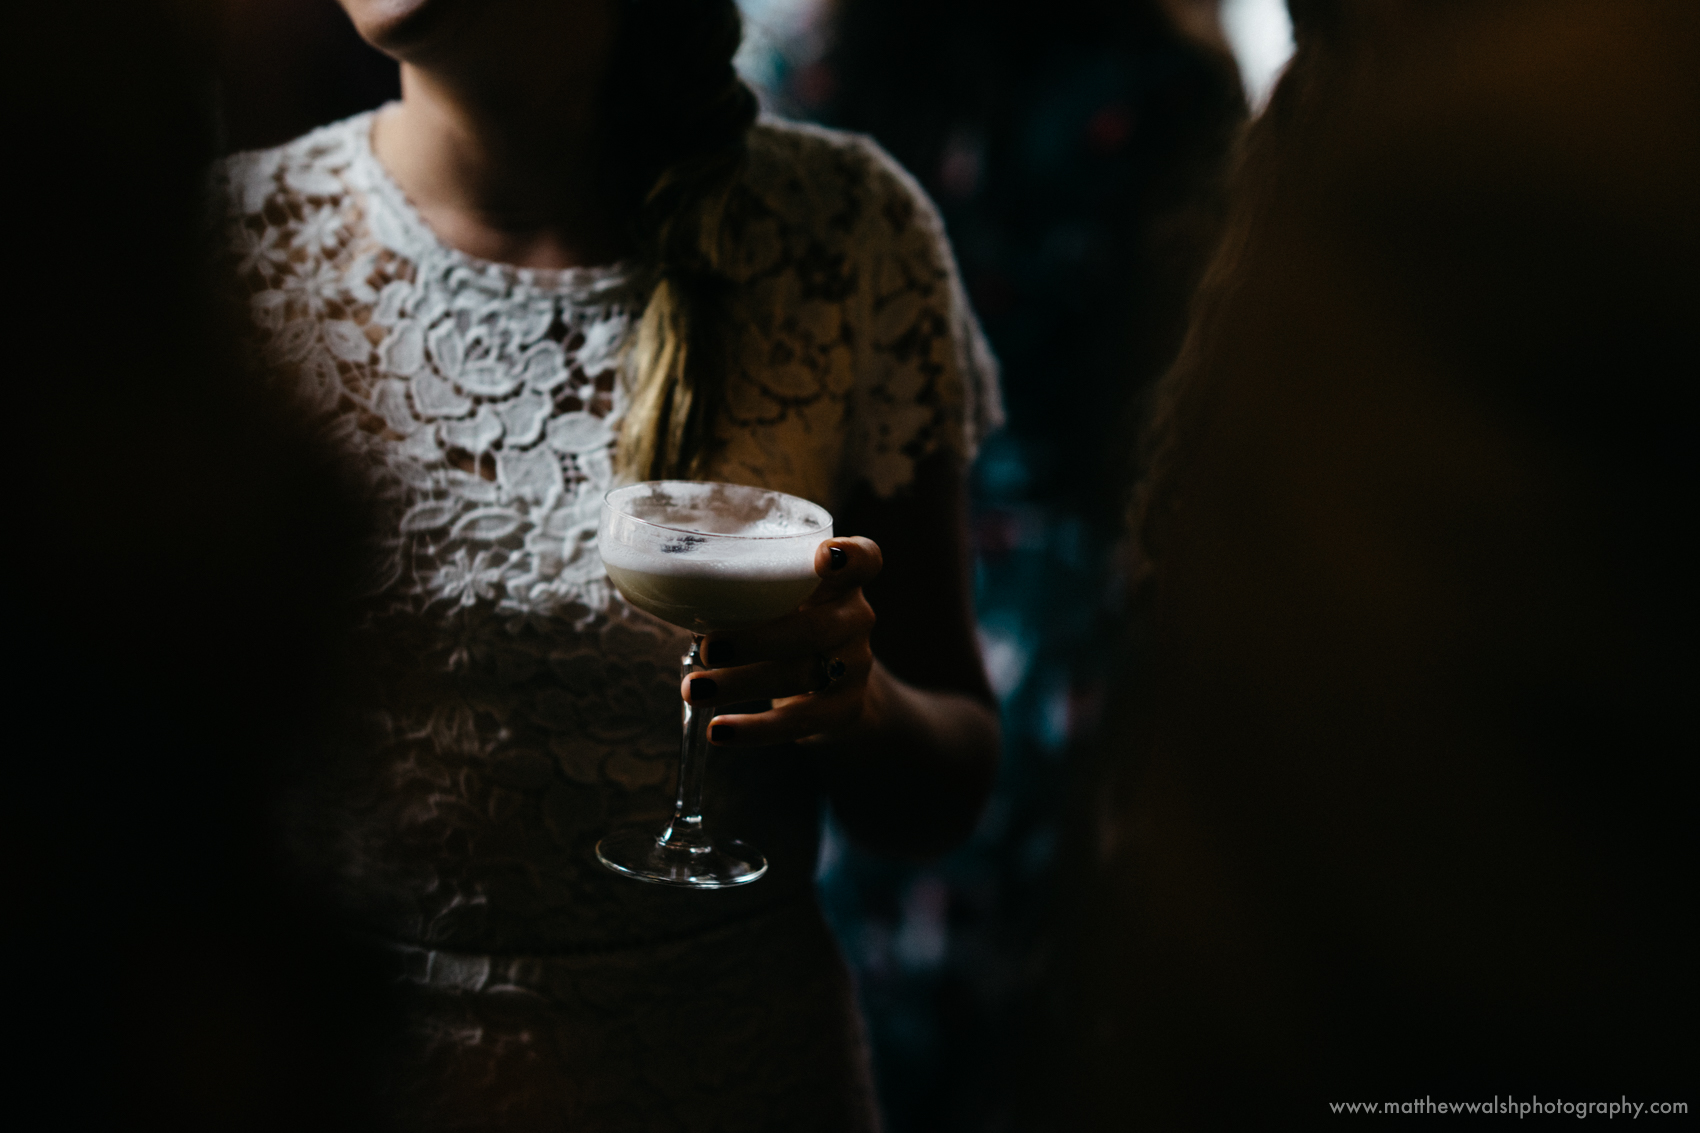 A slither of light catches the brides drink and dress, not a moment to be missed